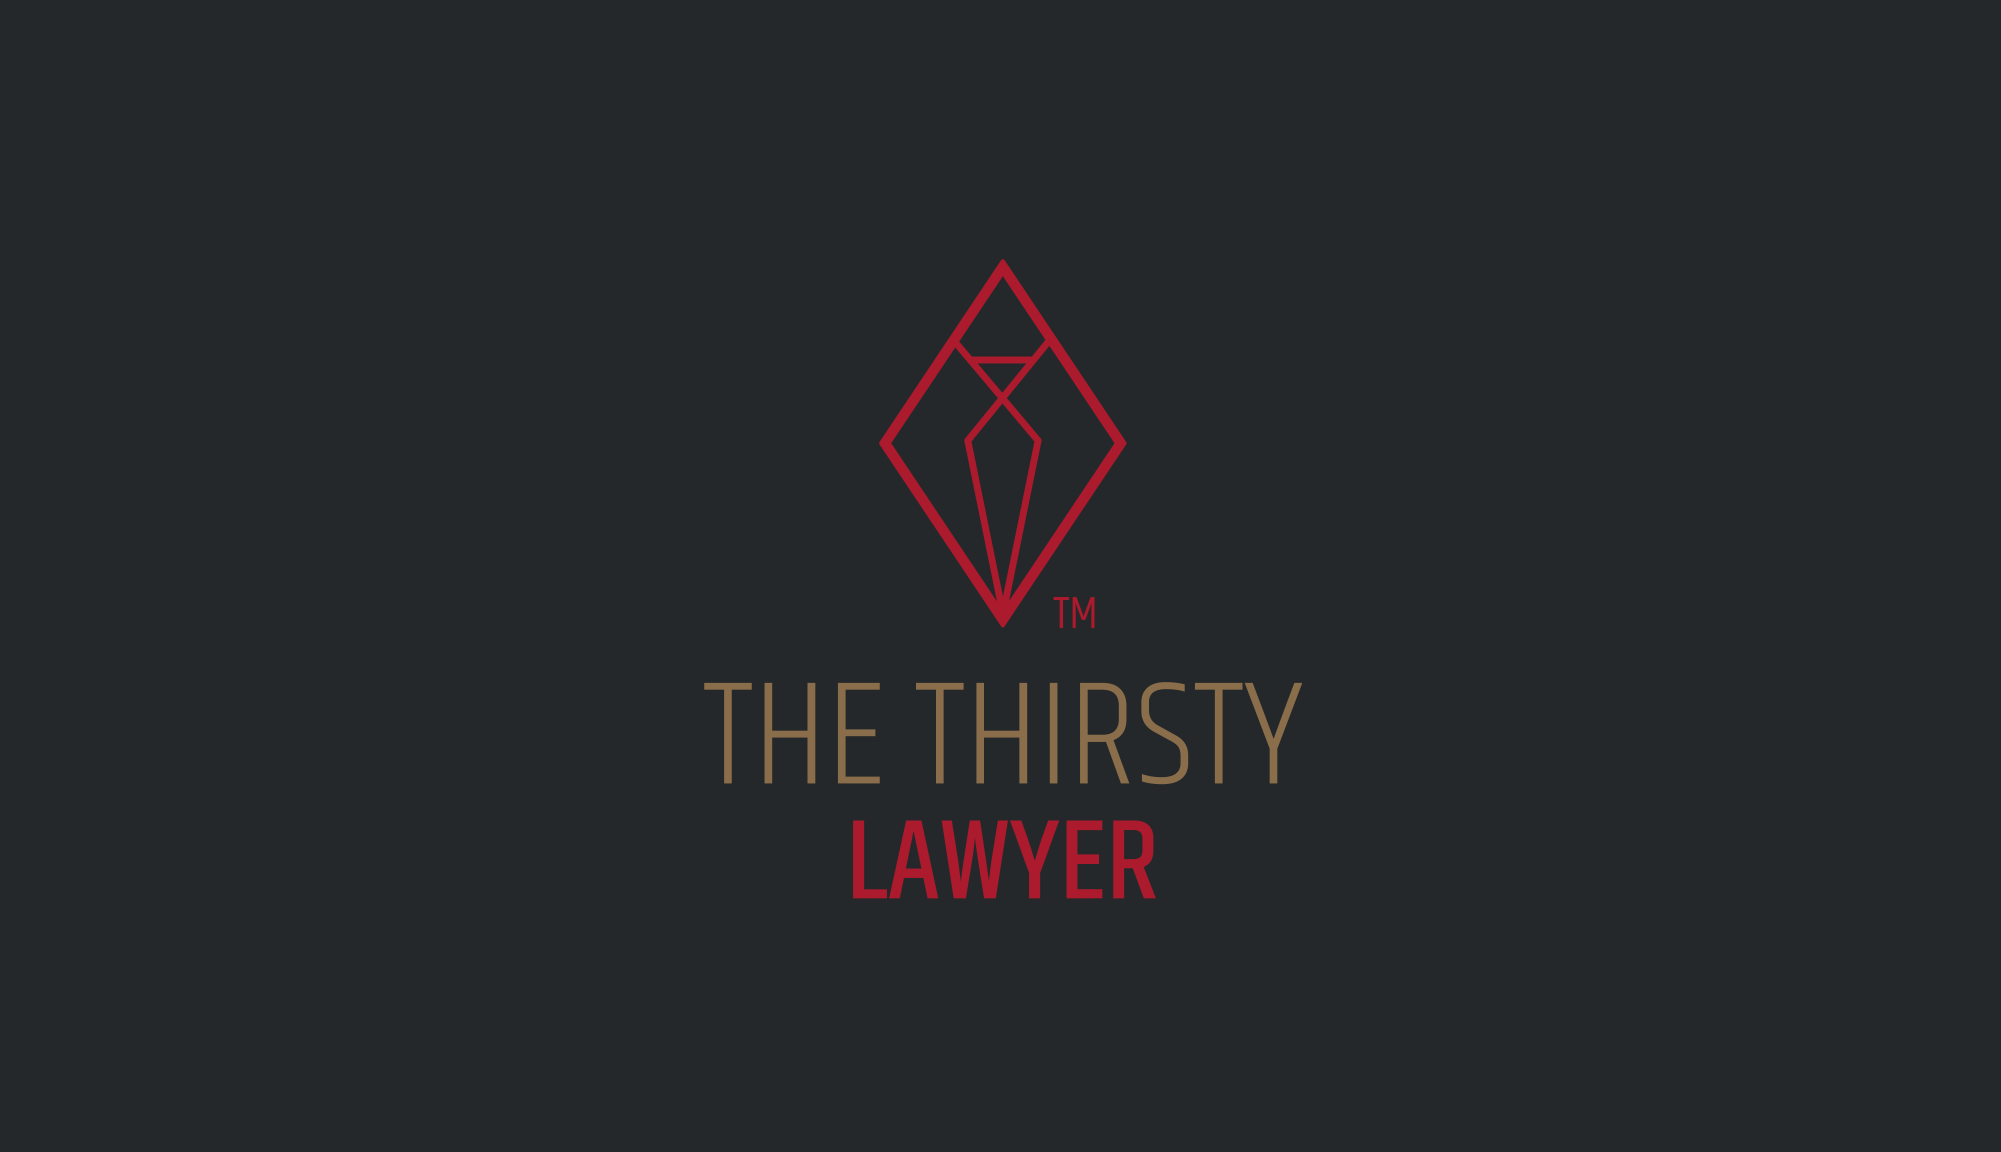 the-thirsty-lawyer-logo-ty